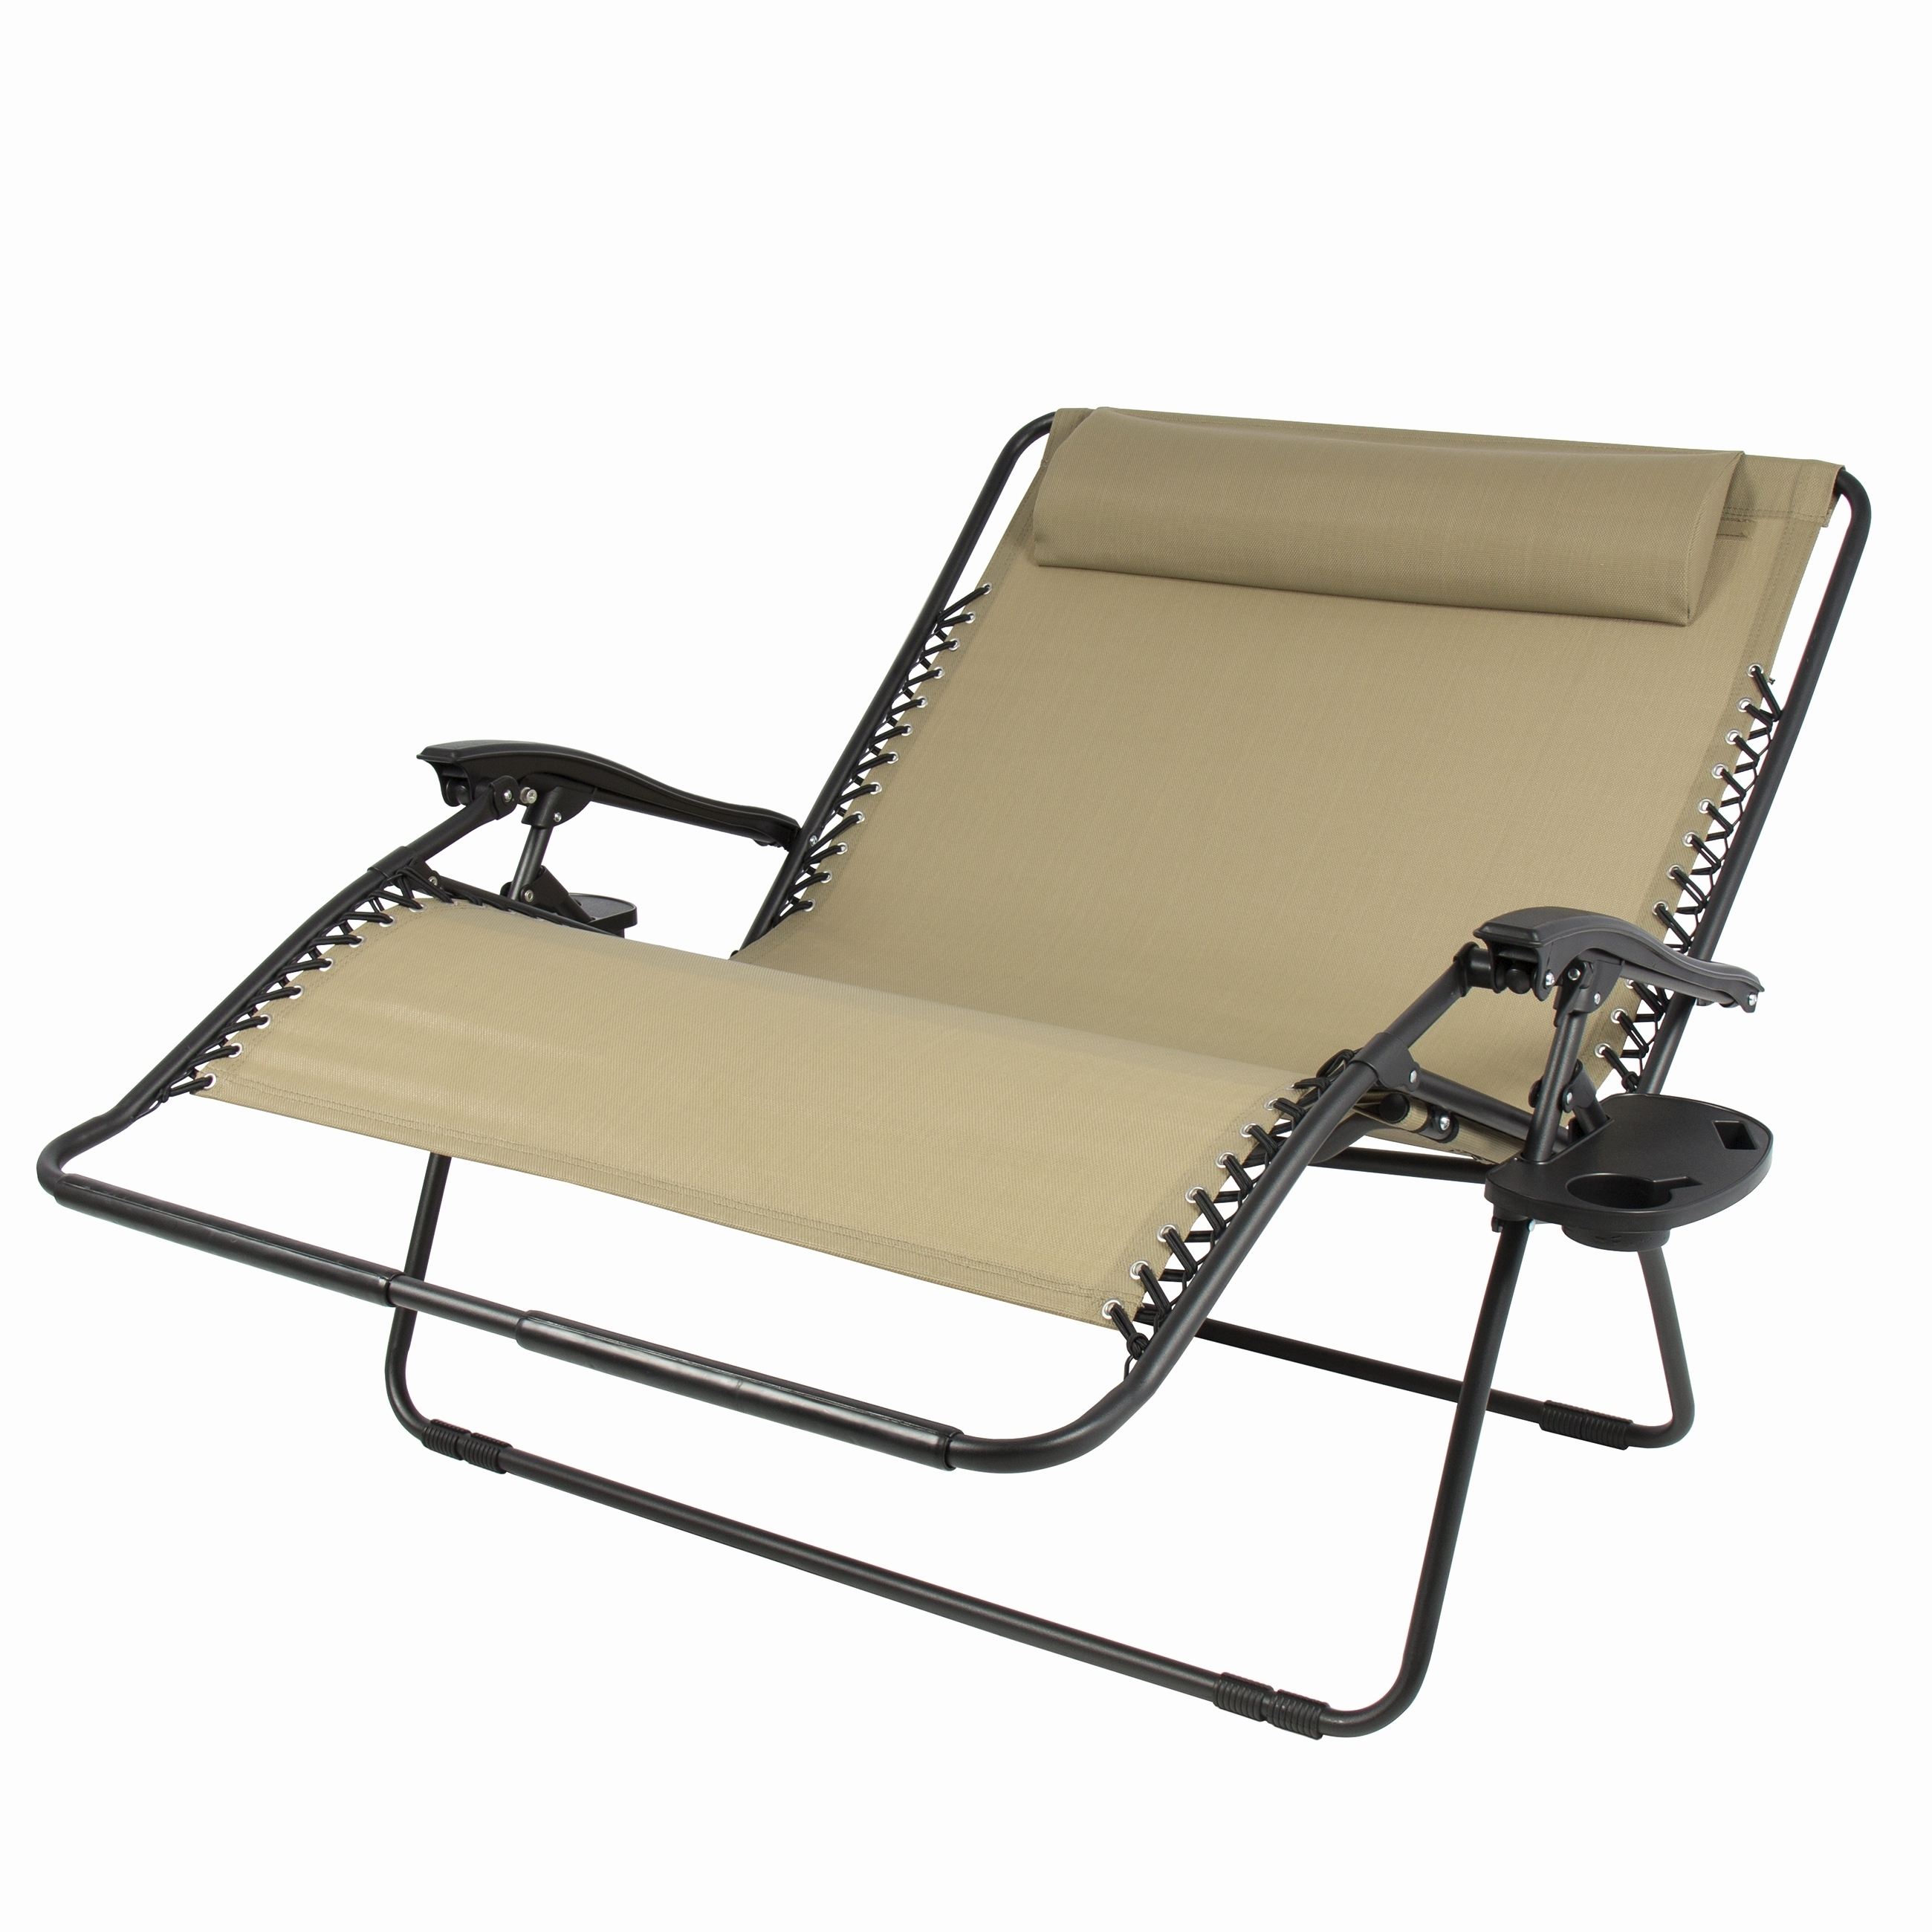 Popular Convertible Chair : Lounges Outdoor Wood Chaise Lounge Clearance Regarding Portable Outdoor Chaise Lounge Chairs (View 2 of 15)